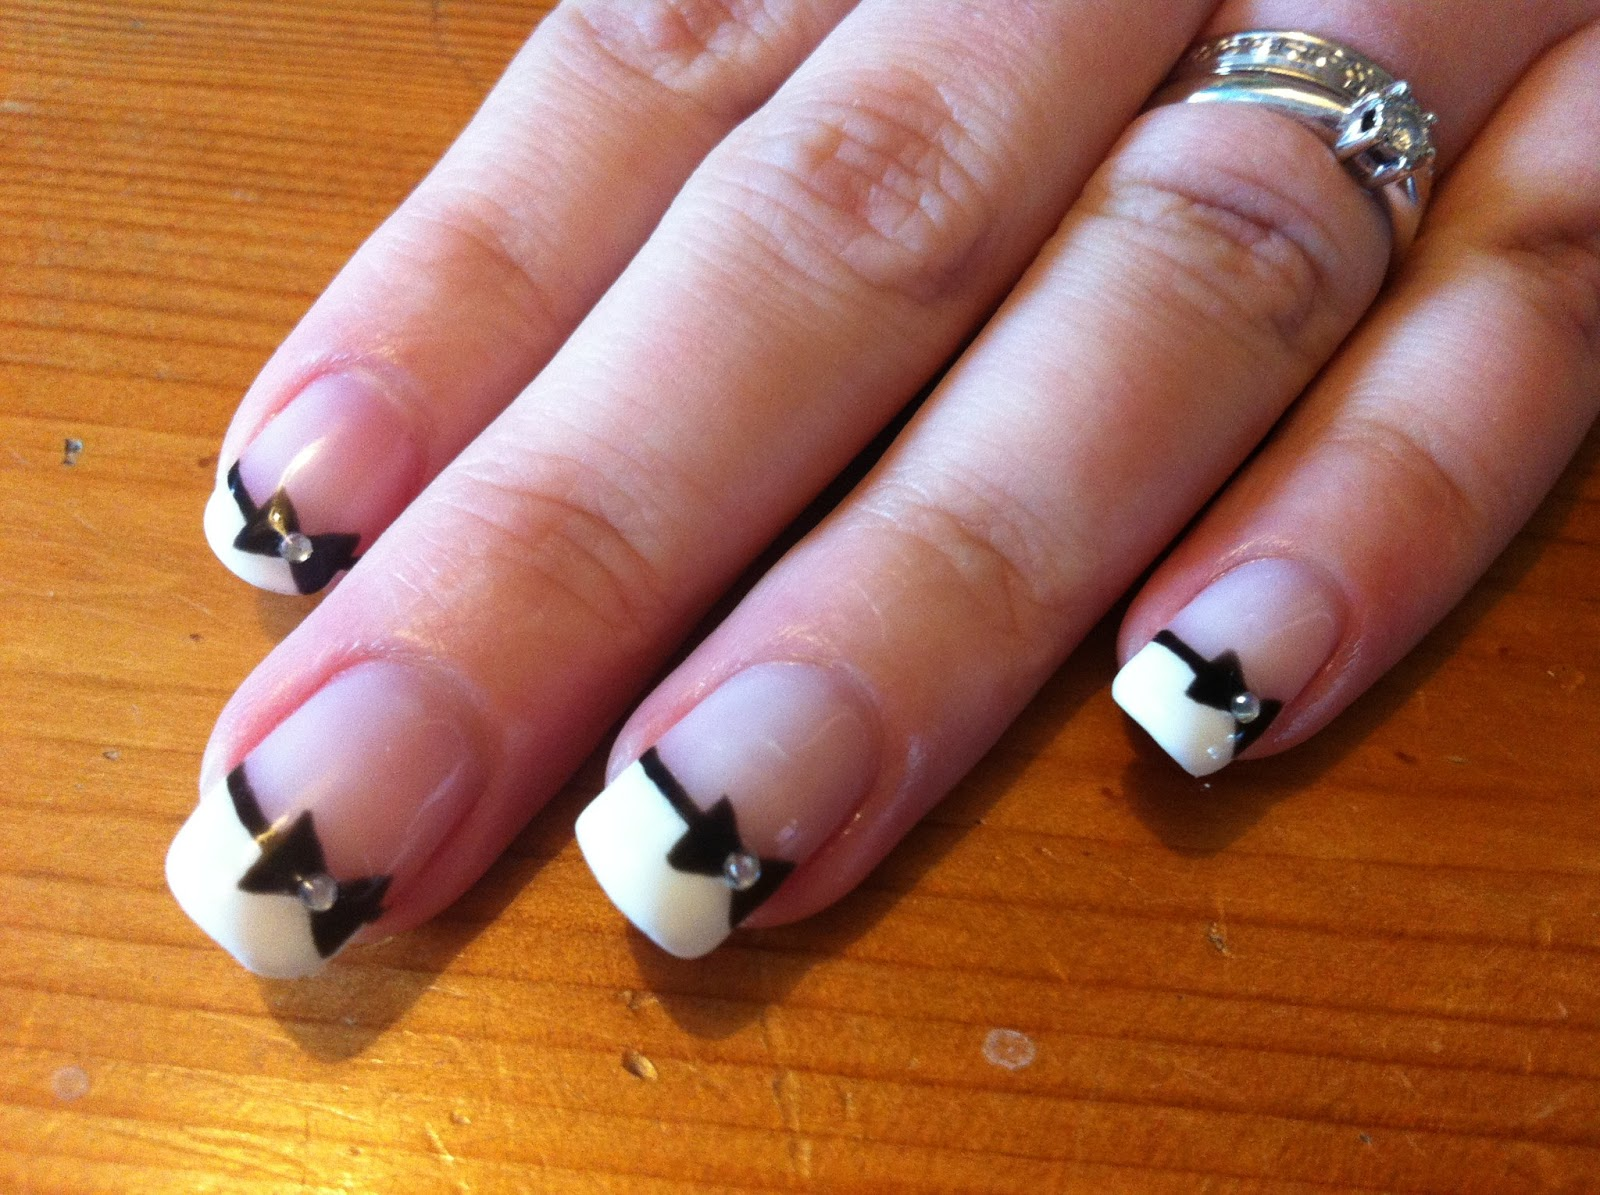 brush up and polish up cnd shellac nail art french manicure with black bows. Black Bedroom Furniture Sets. Home Design Ideas